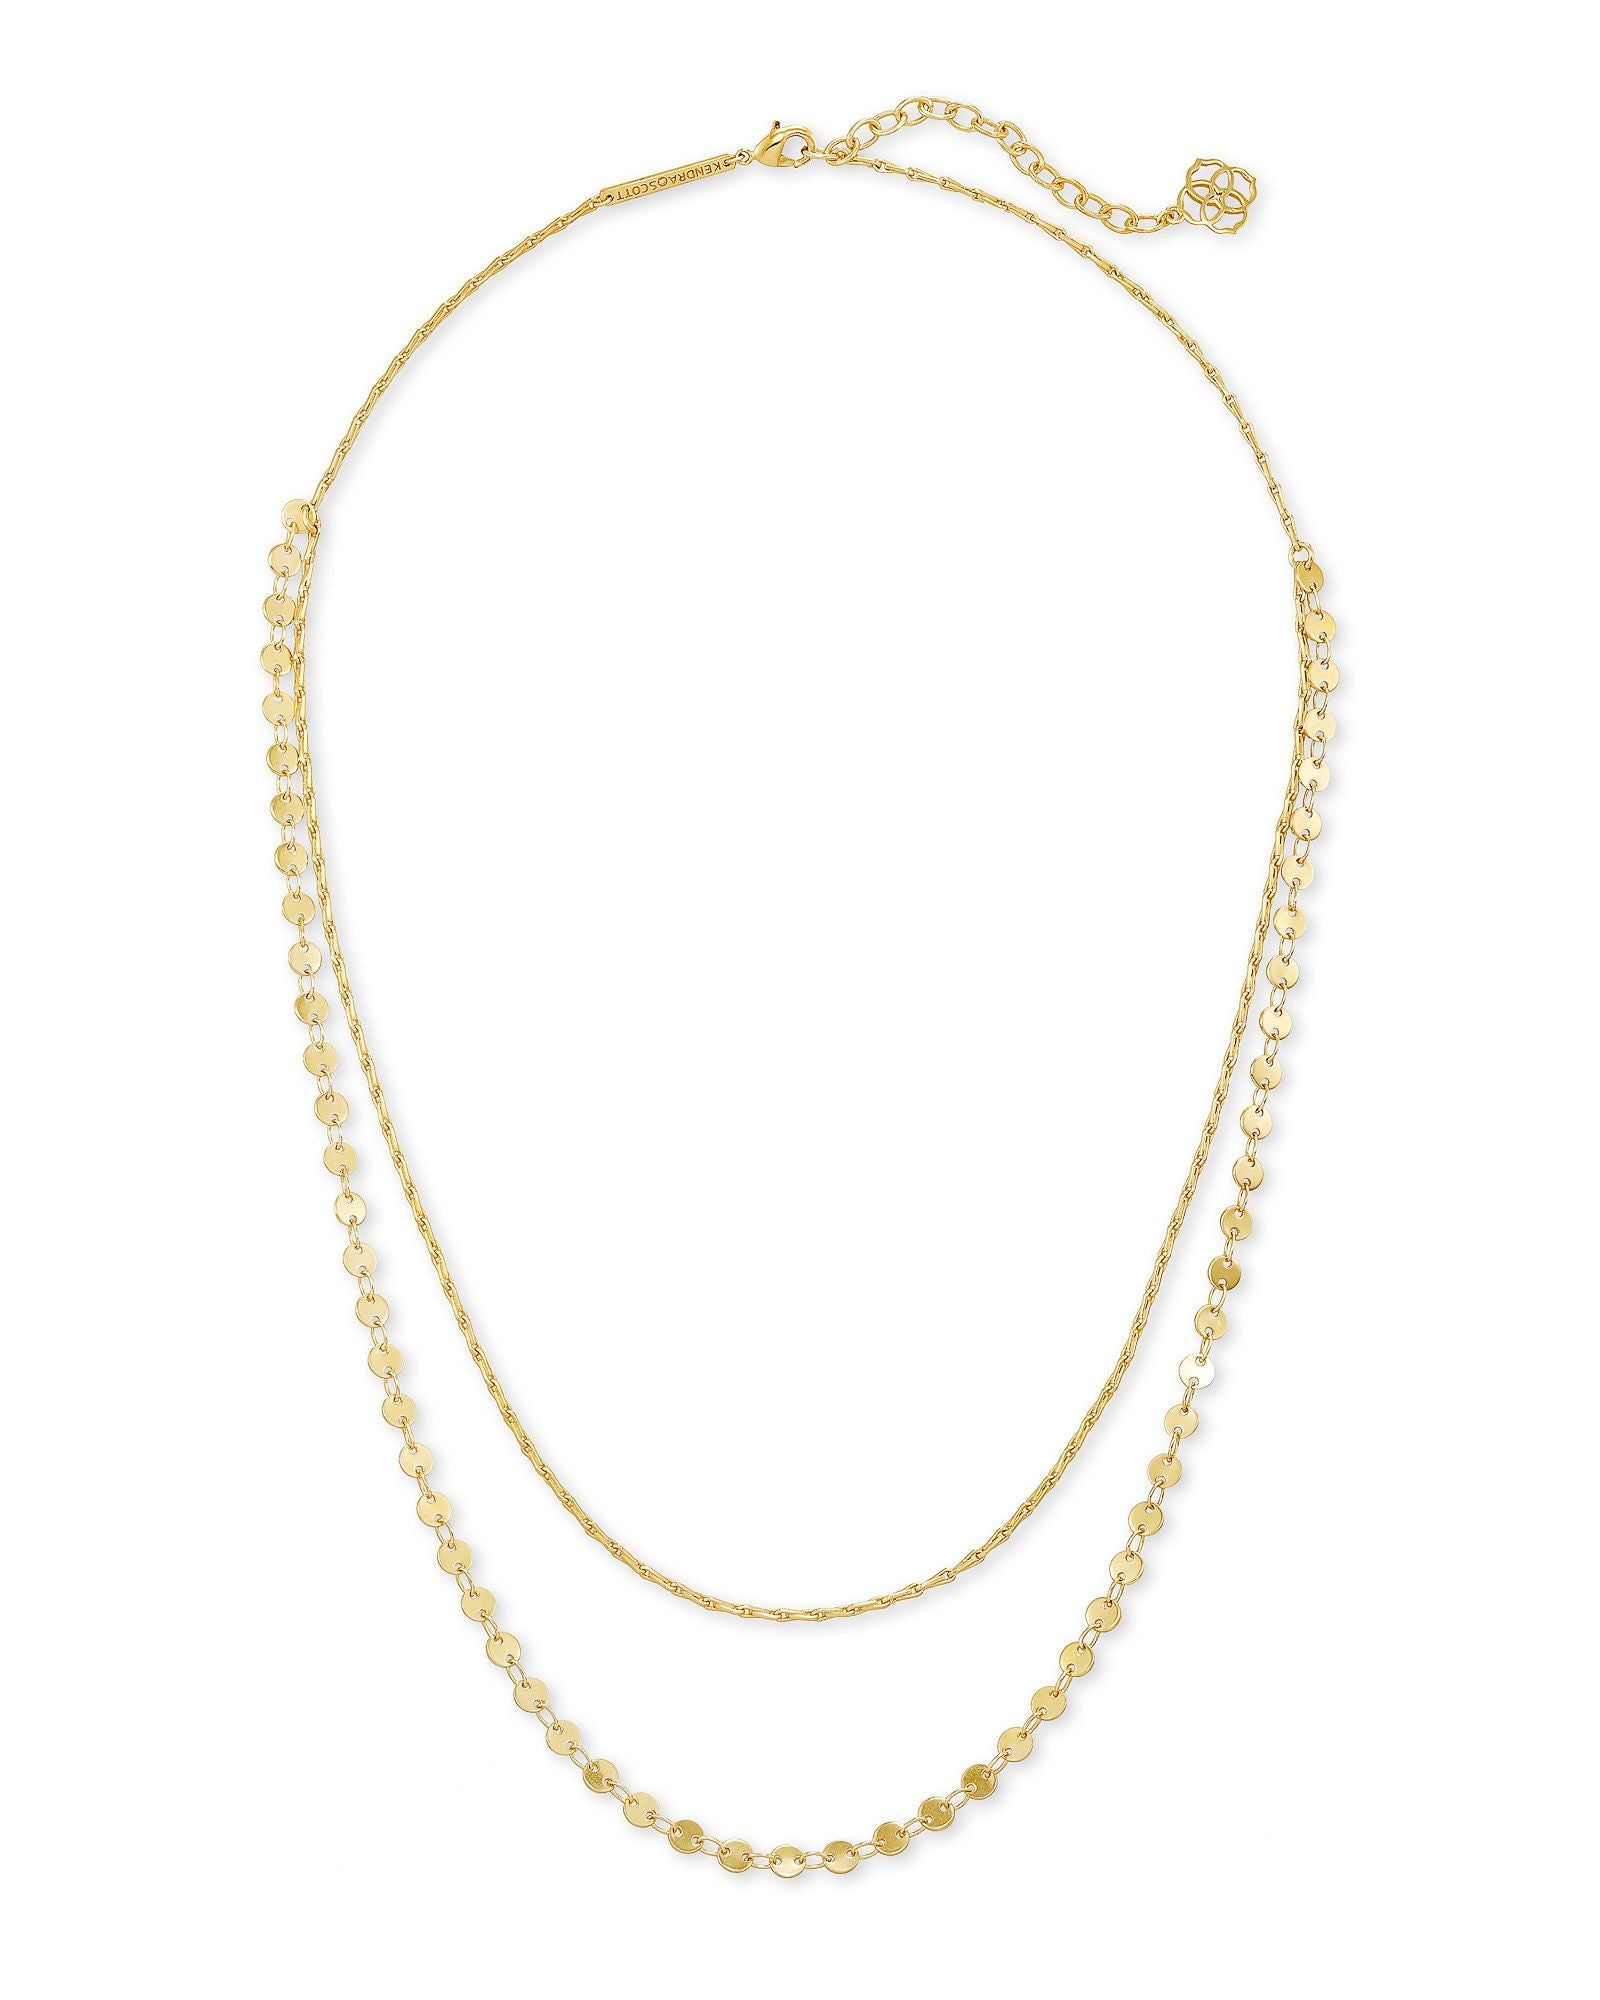 Sydney Multi Strand Necklace in Gold